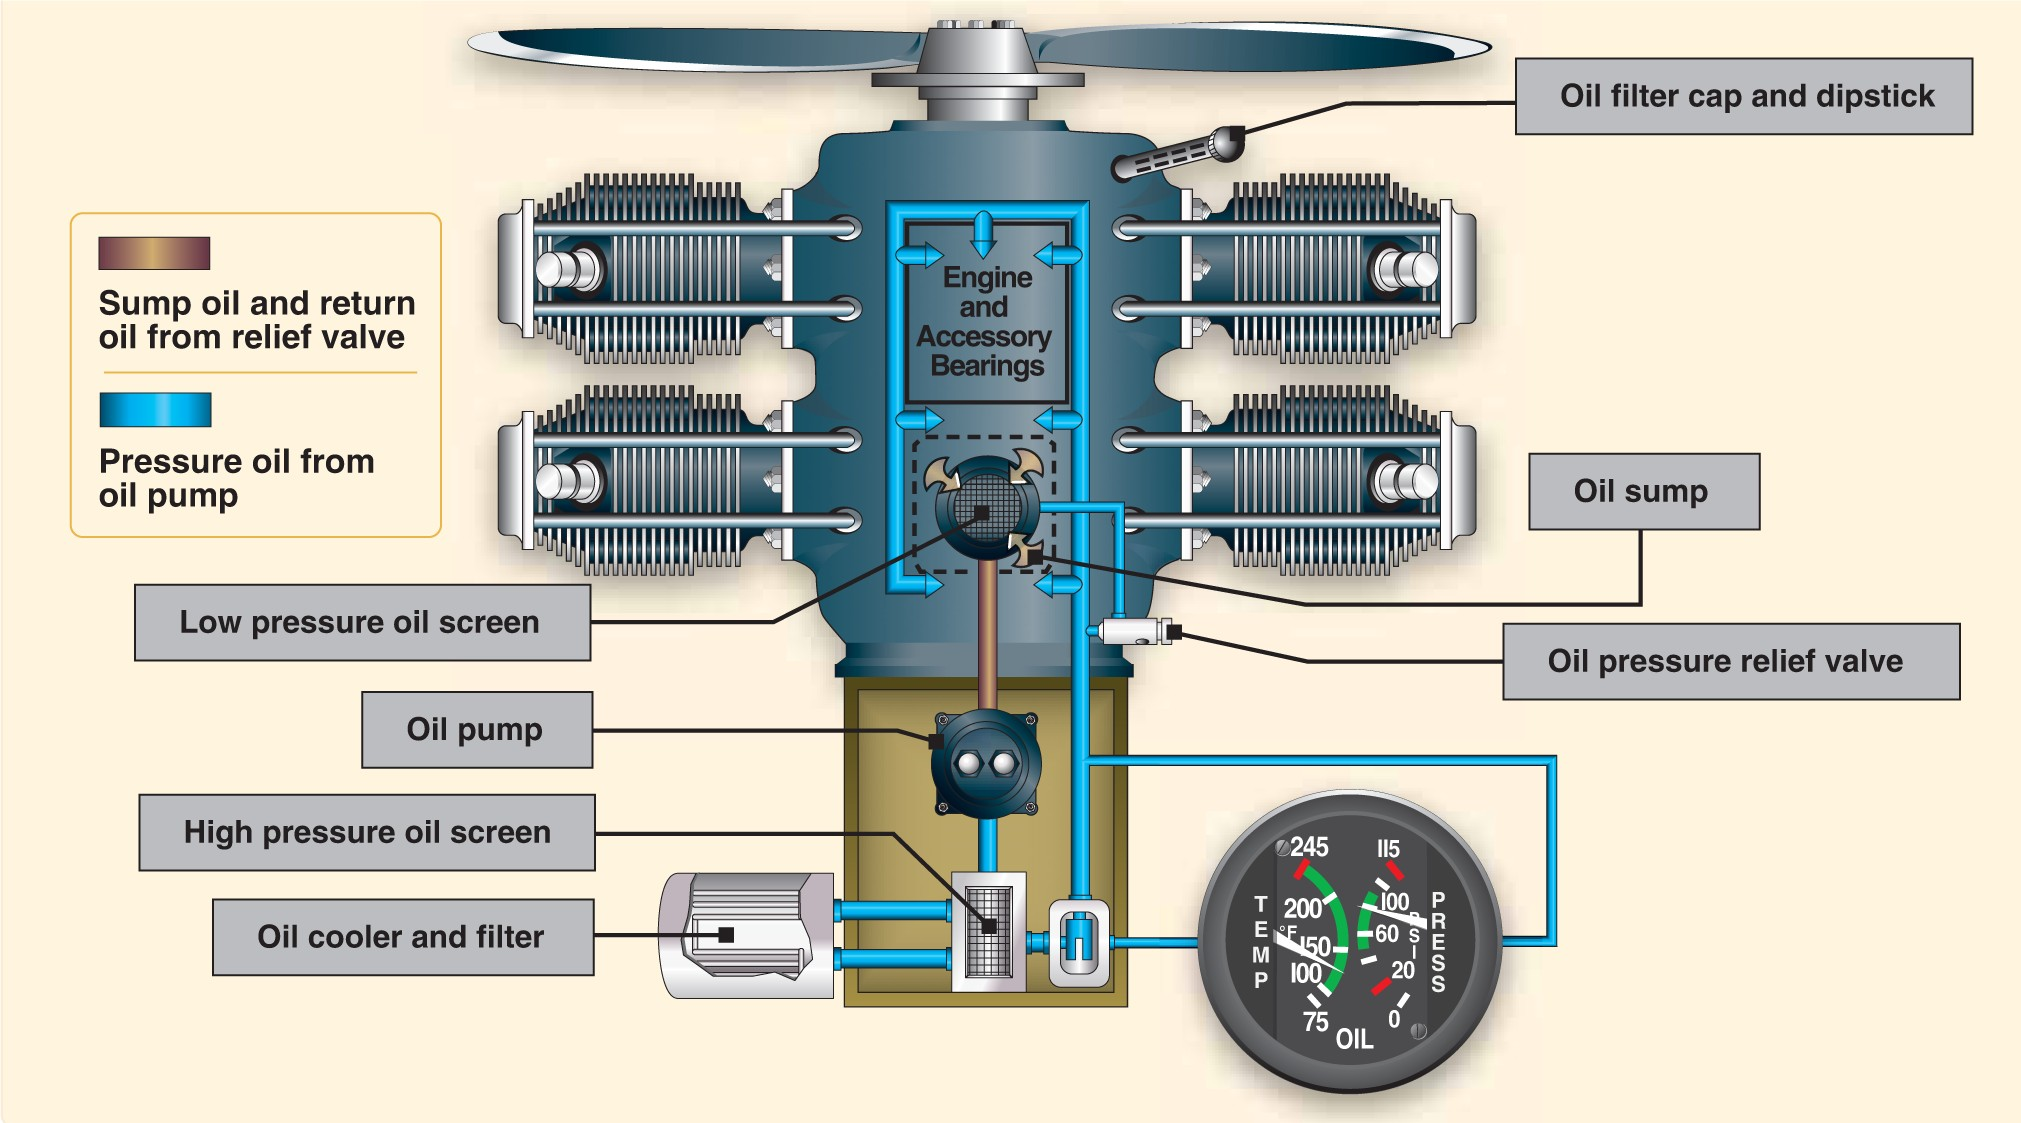 Dry Sump Oil System Diagram Aircraft Systems Oil Systems – Learn to Fly Blog asa Aviation Of Dry Sump Oil System Diagram